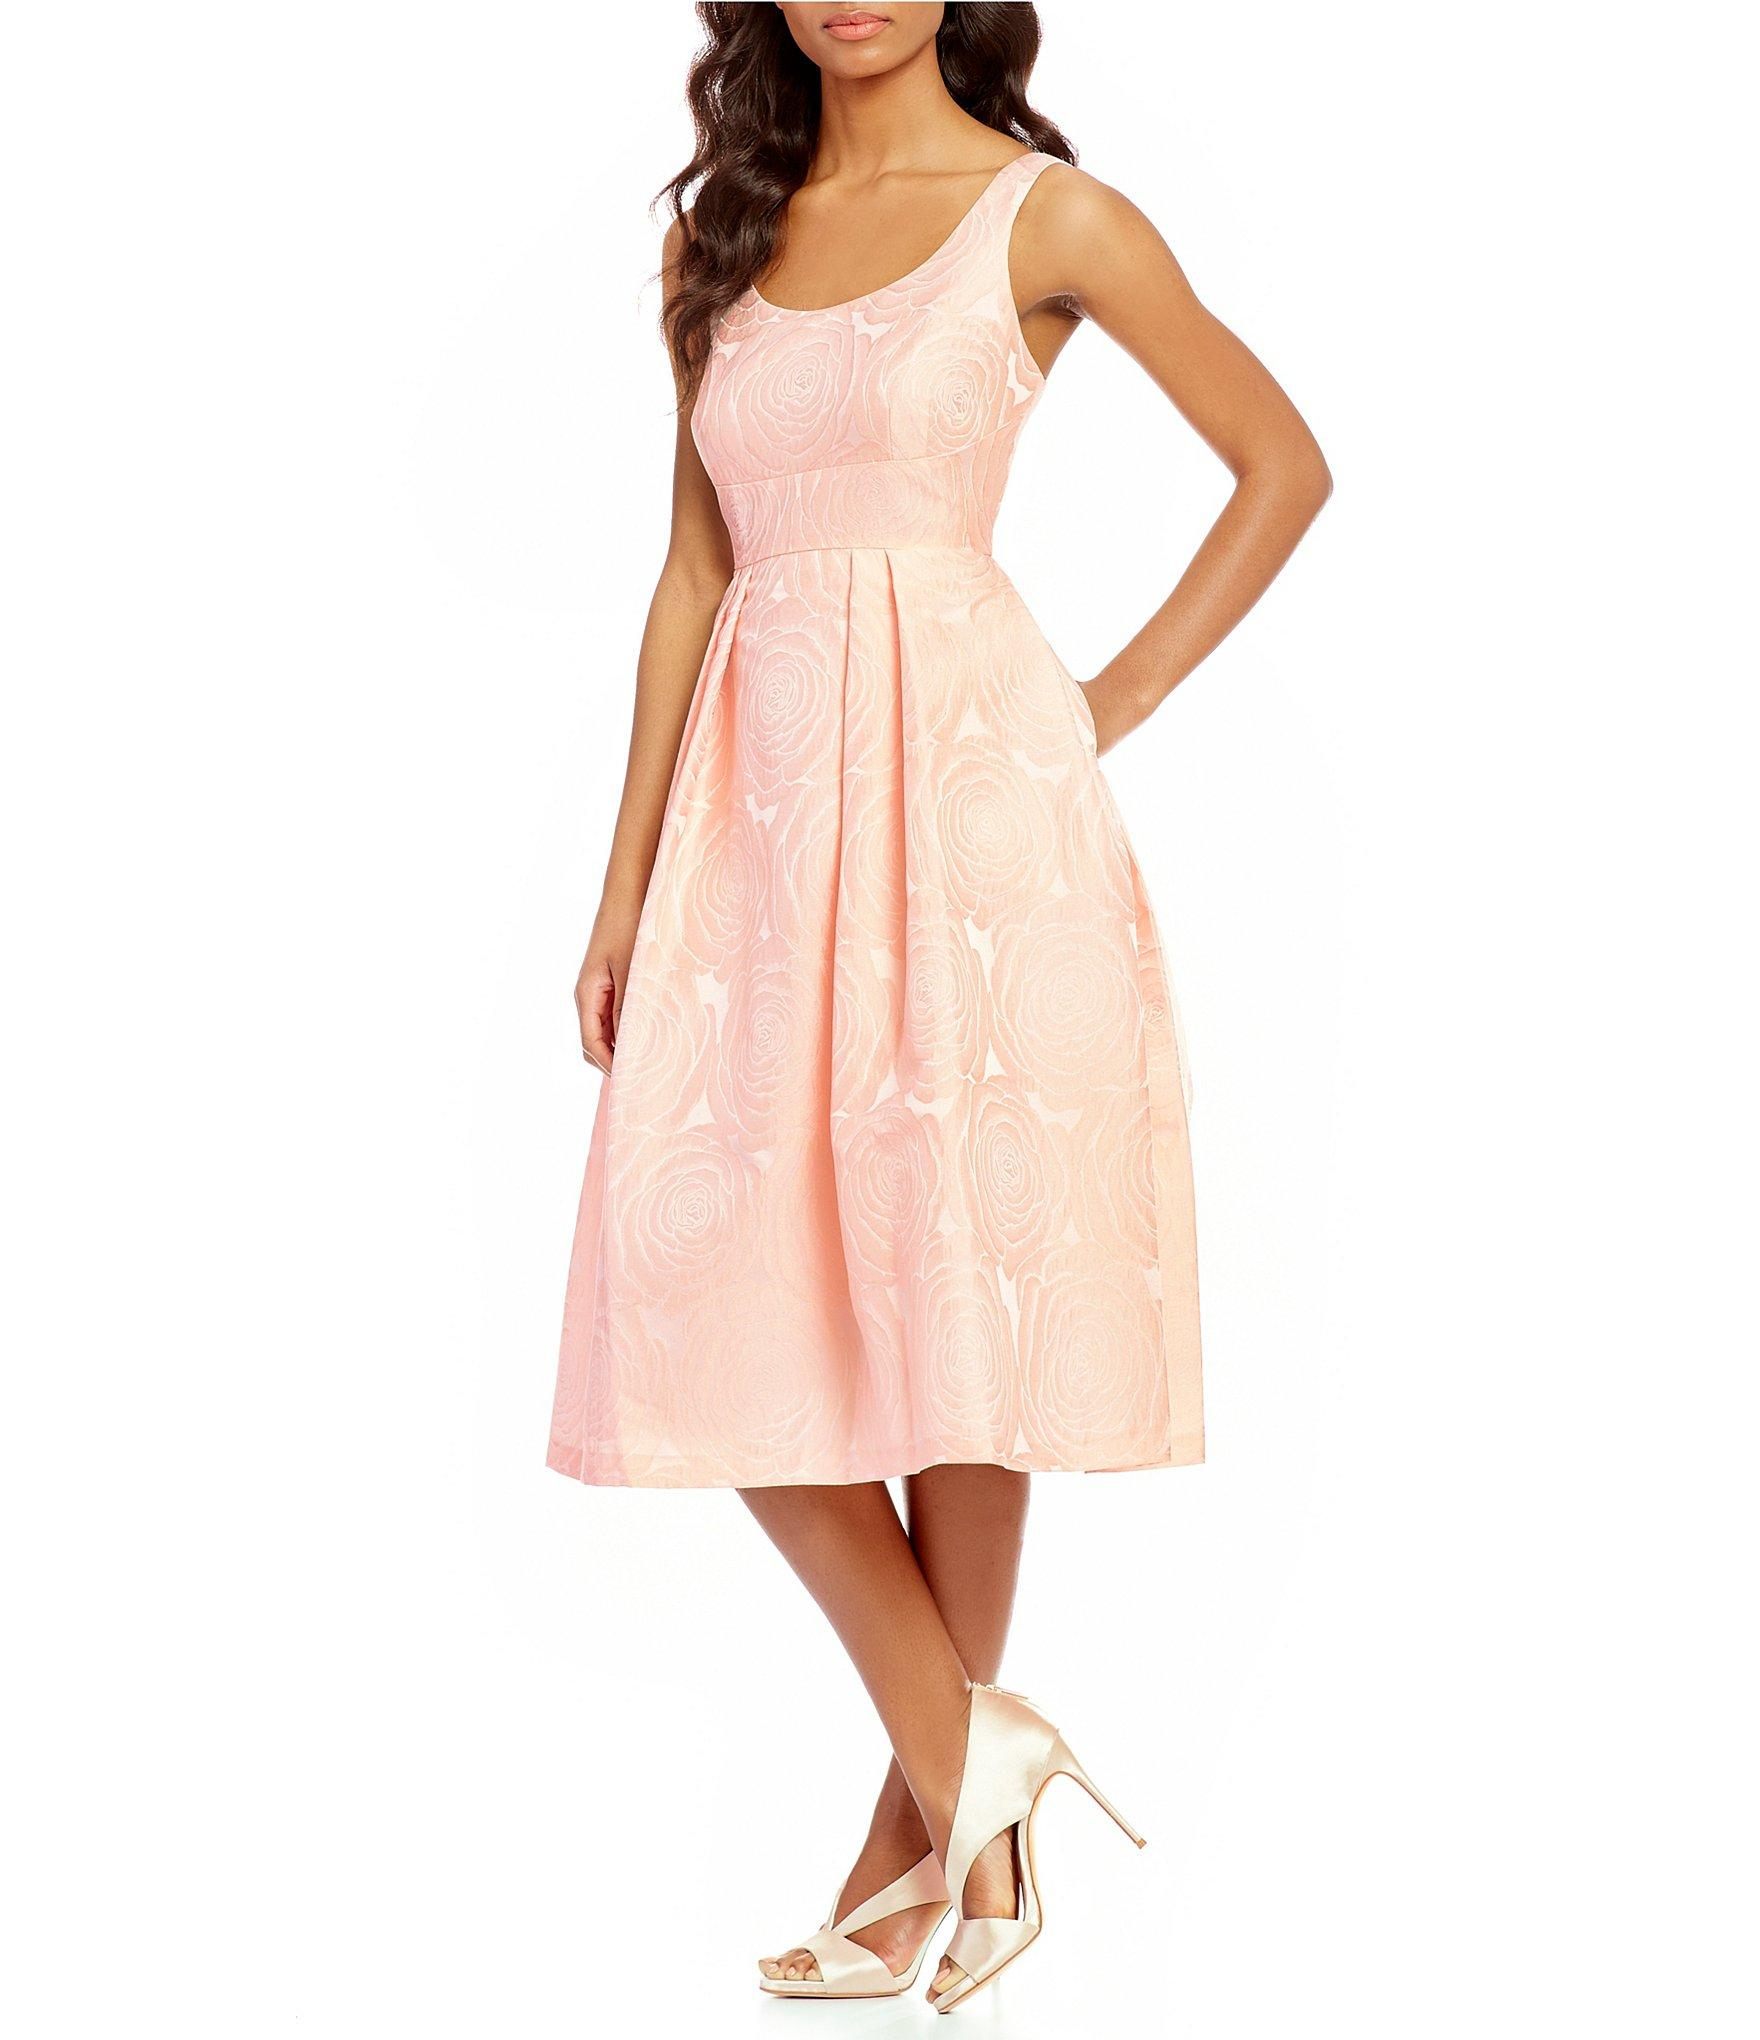 Ivanka trump Rose Jacquard Fit-and-flare Dress in Pink   Lyst